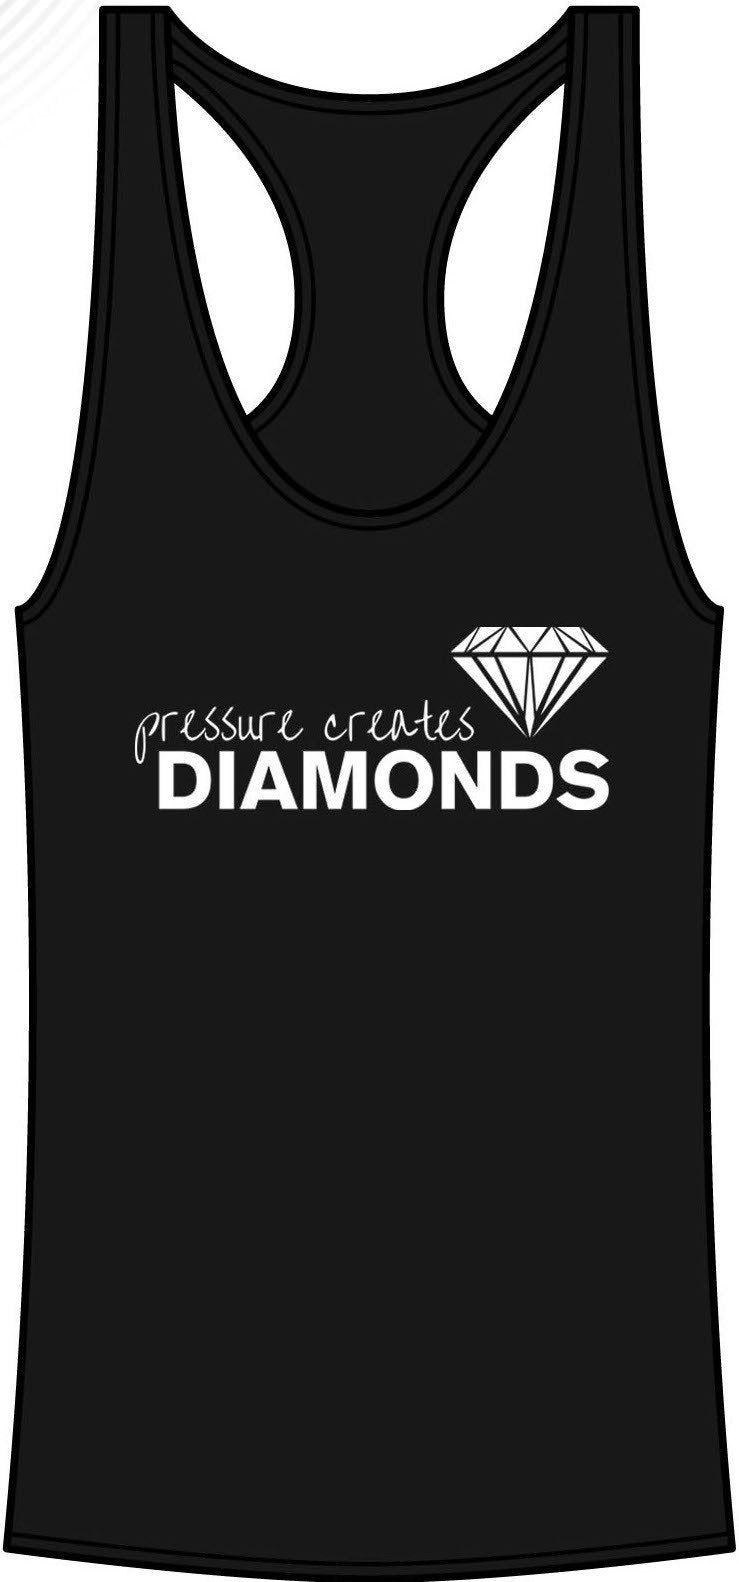 Pressure Creates Diamonds Tanktop- Black - FitGirls_inspire - 2